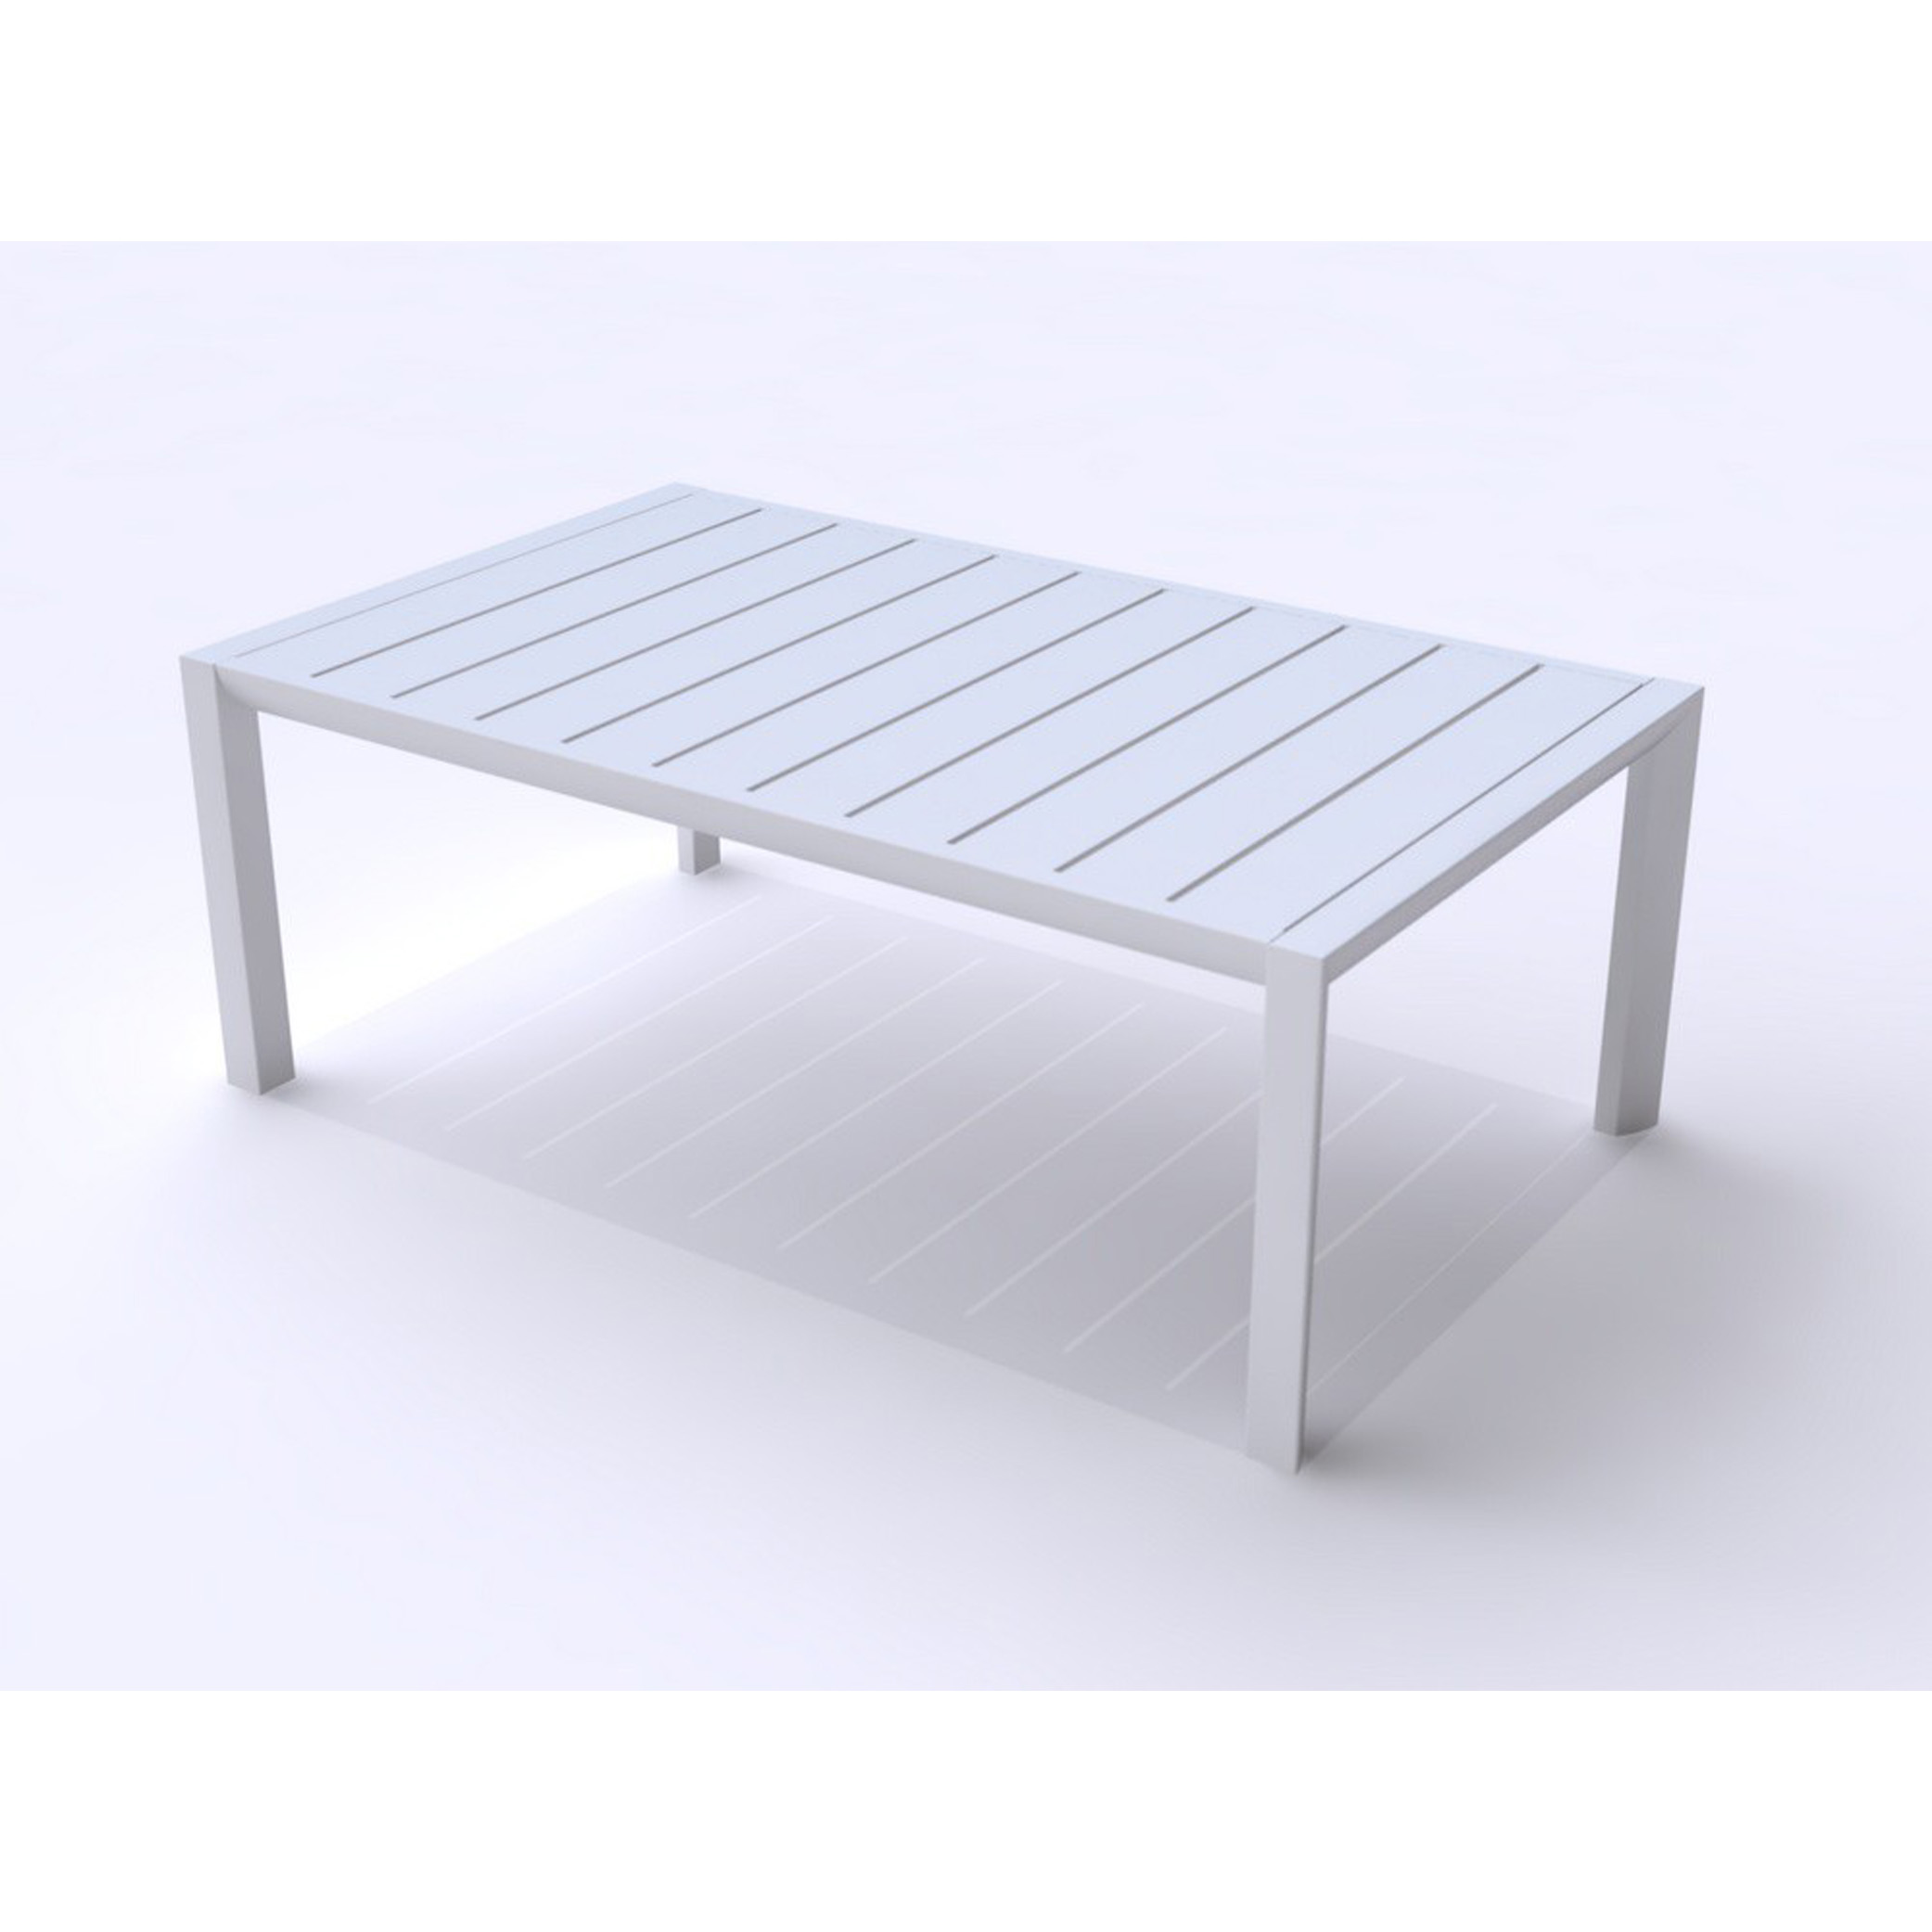 Grosfillex US004096 table, outdoor